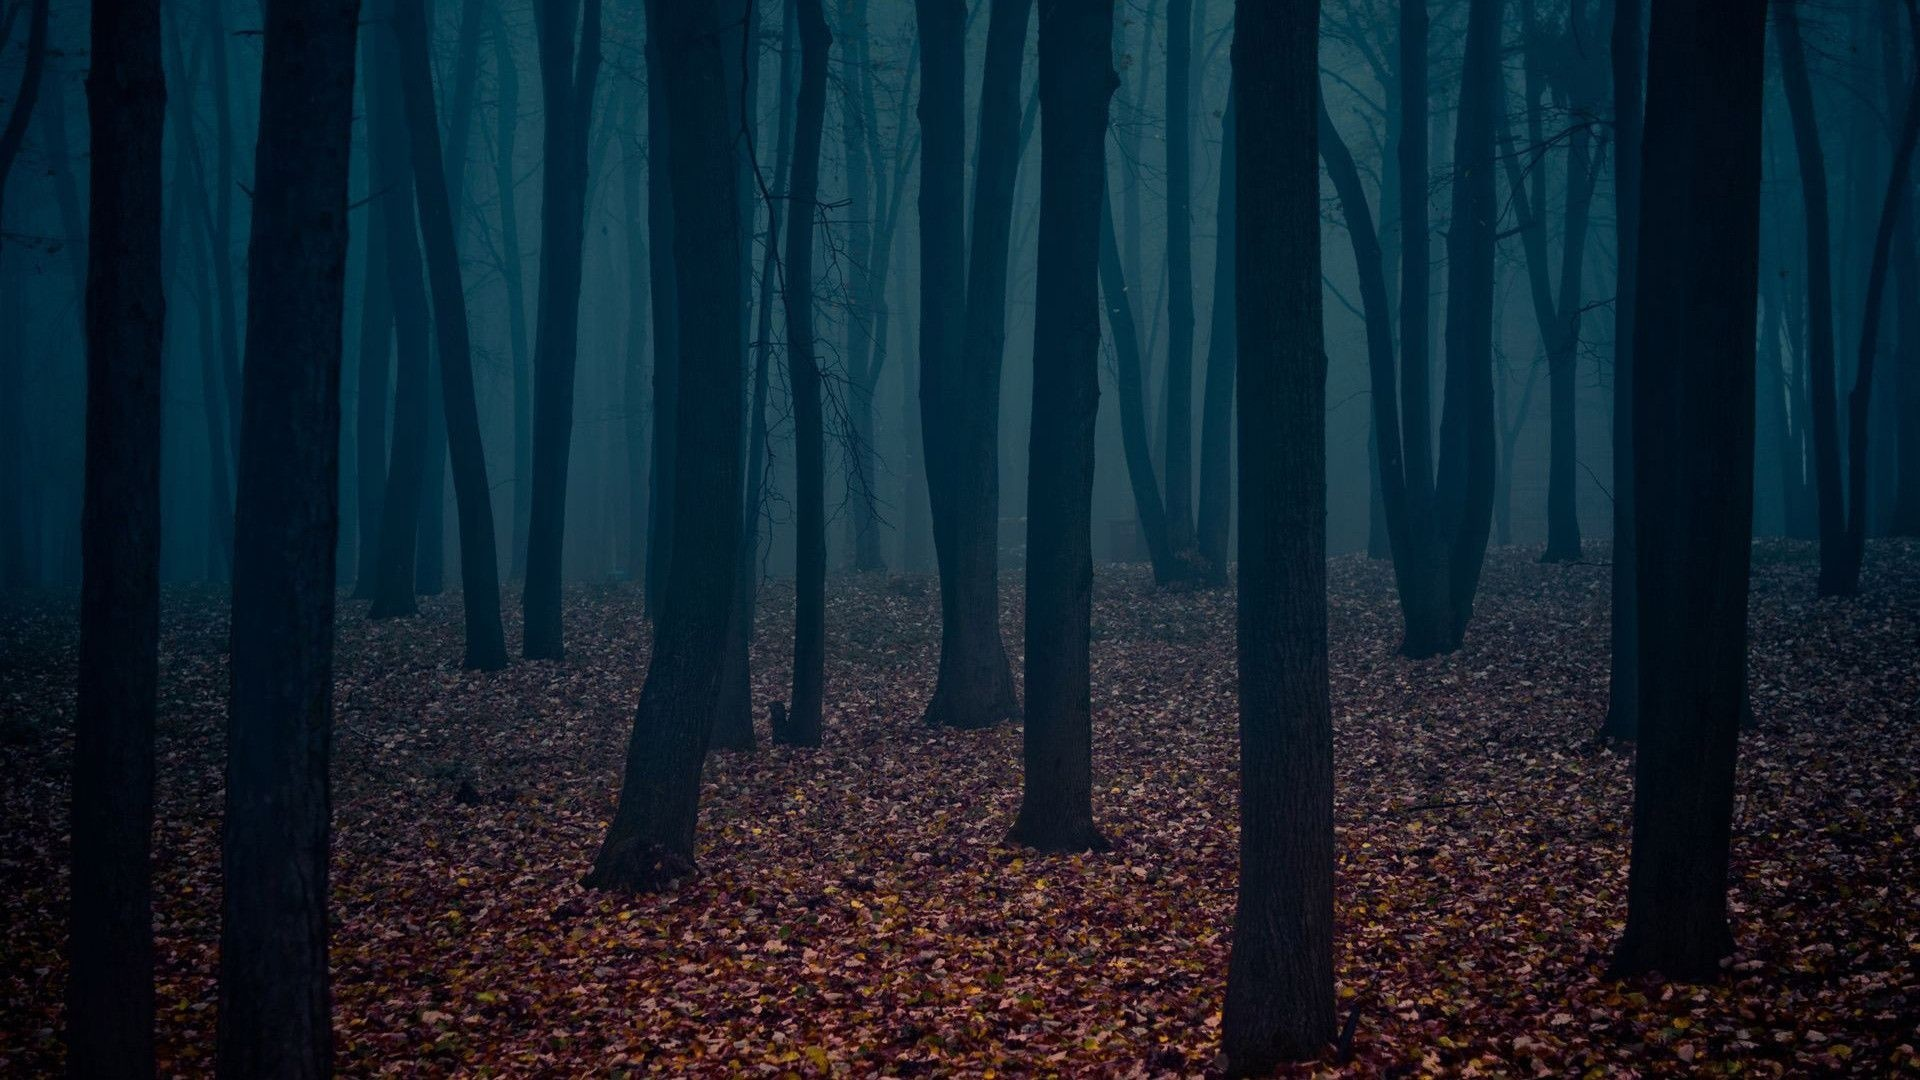 1920x1080 Dark Forest Wallpapers Wallpaper Cave Dark Forest Wallpaper